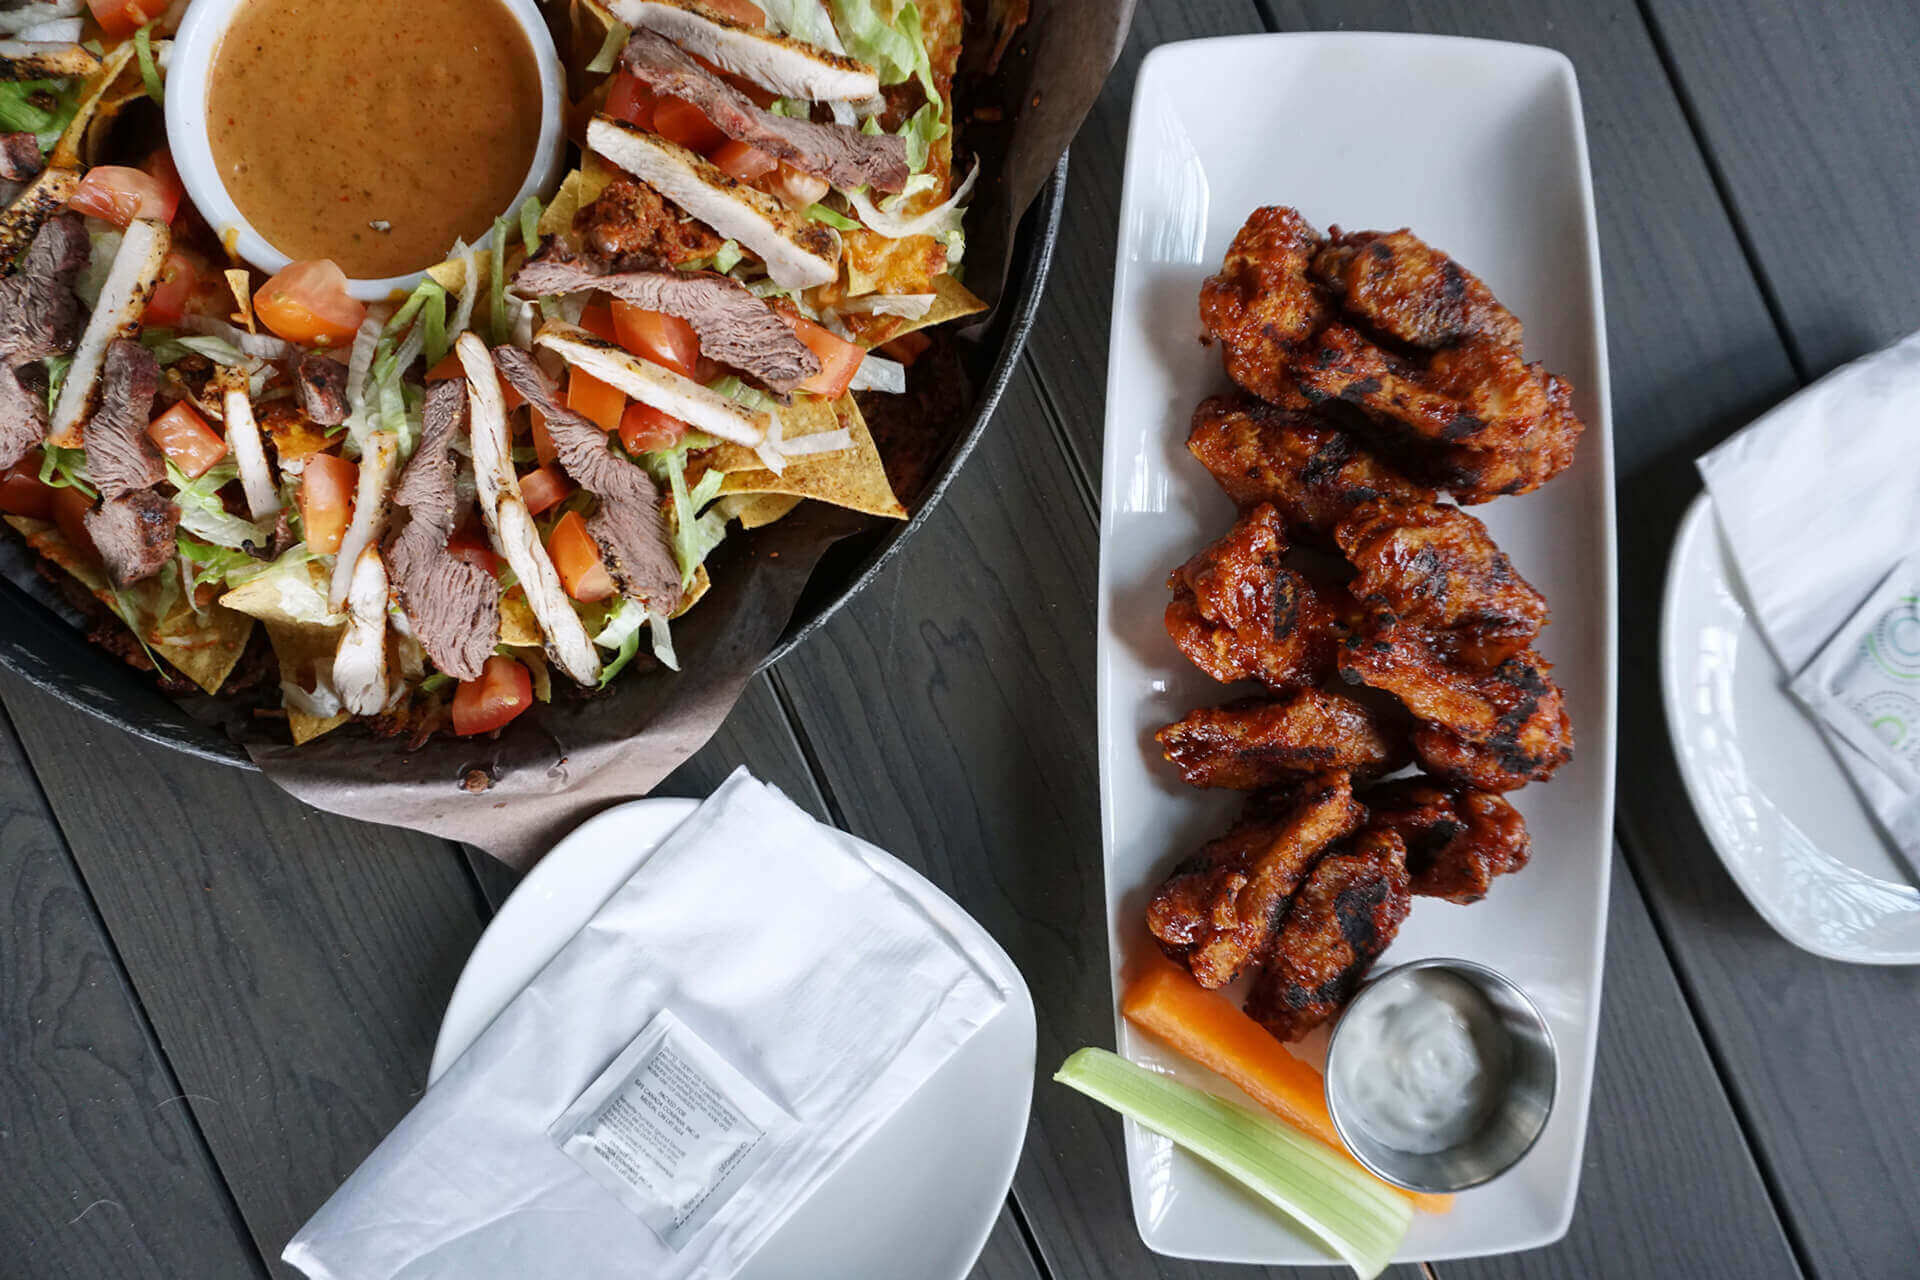 Left: Macho Nachos, Right: Grilled Wings